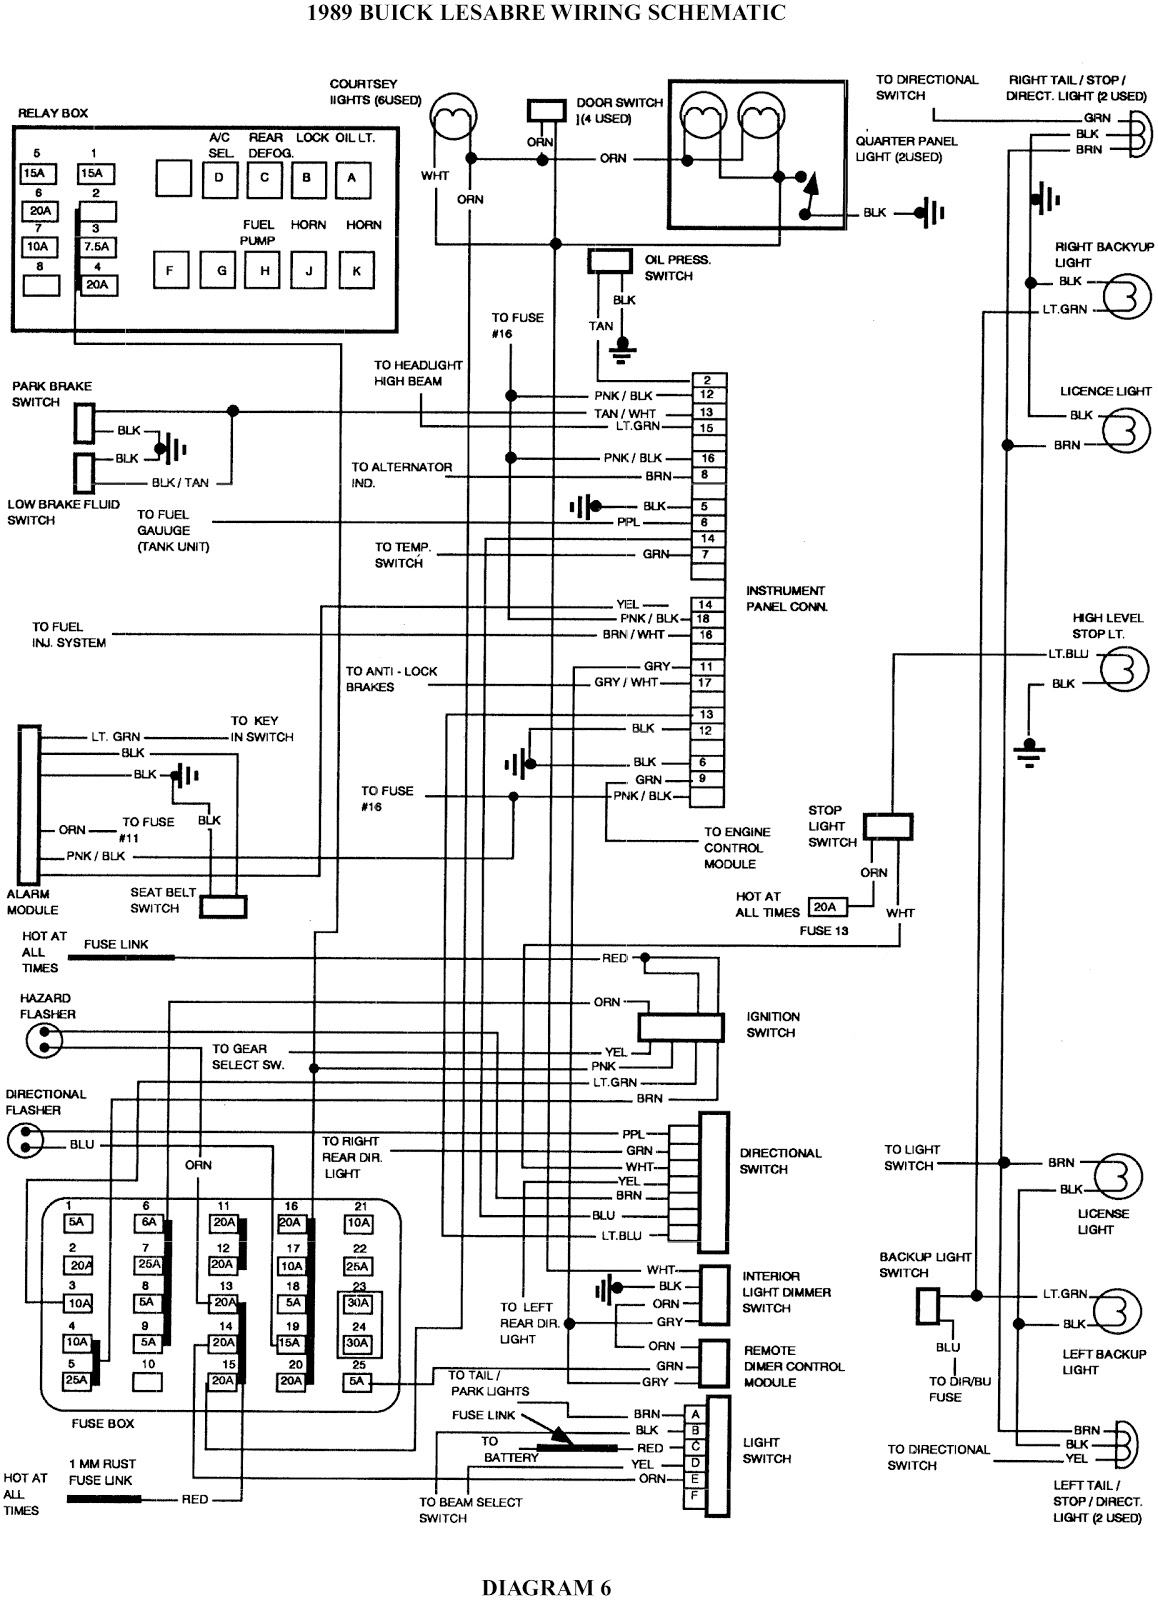 wiring diagram for grand am